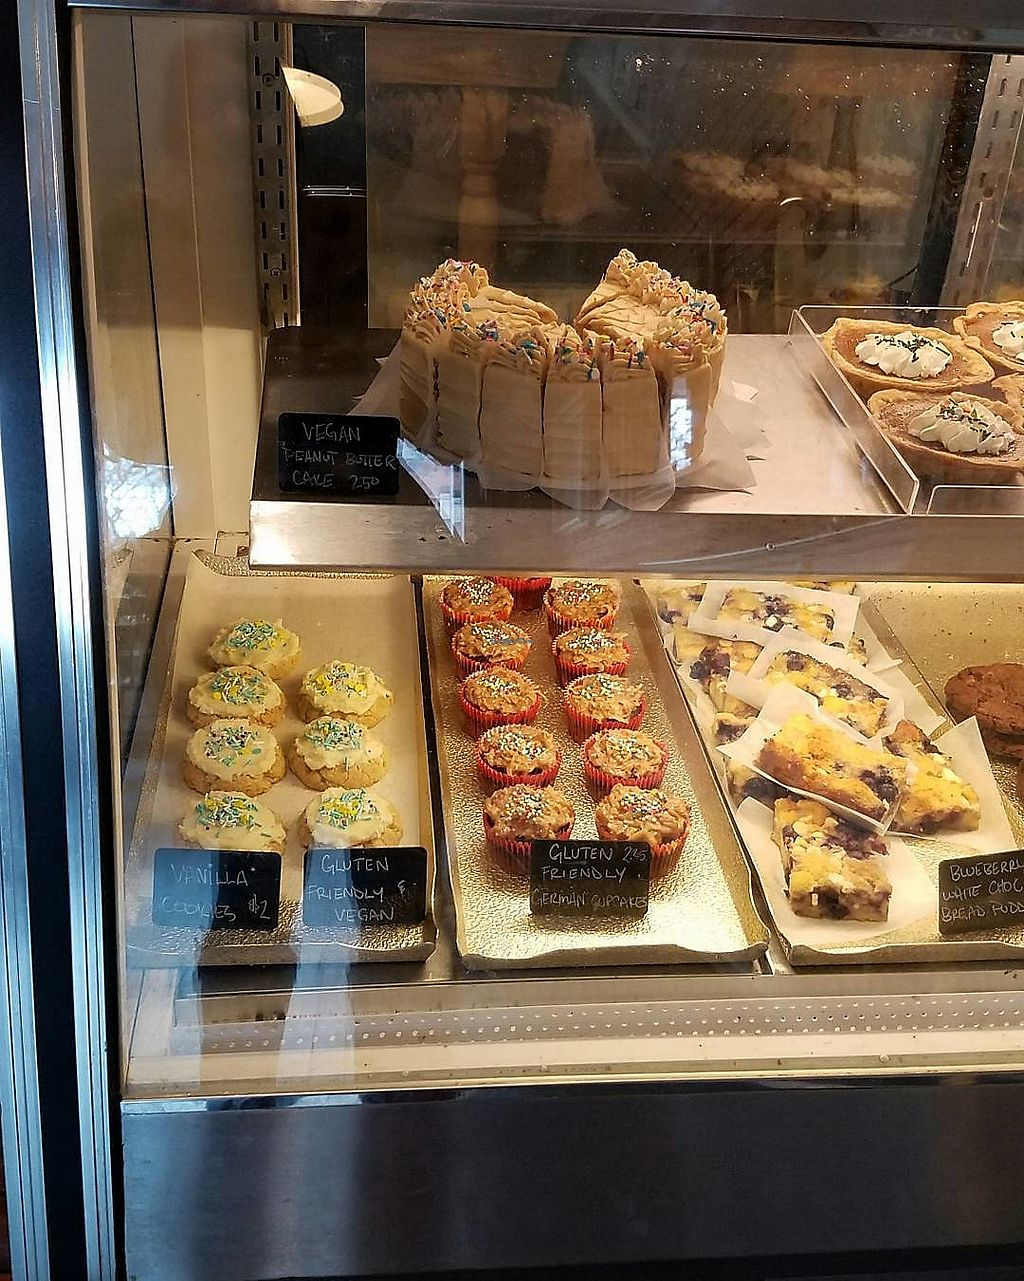 """Photo of Anastasia's Bakery  by <a href=""""/members/profile/Danushi"""">Danushi</a> <br/>The vegan selection at Anastasia's <br/> December 3, 2017  - <a href='/contact/abuse/image/106473/331888'>Report</a>"""